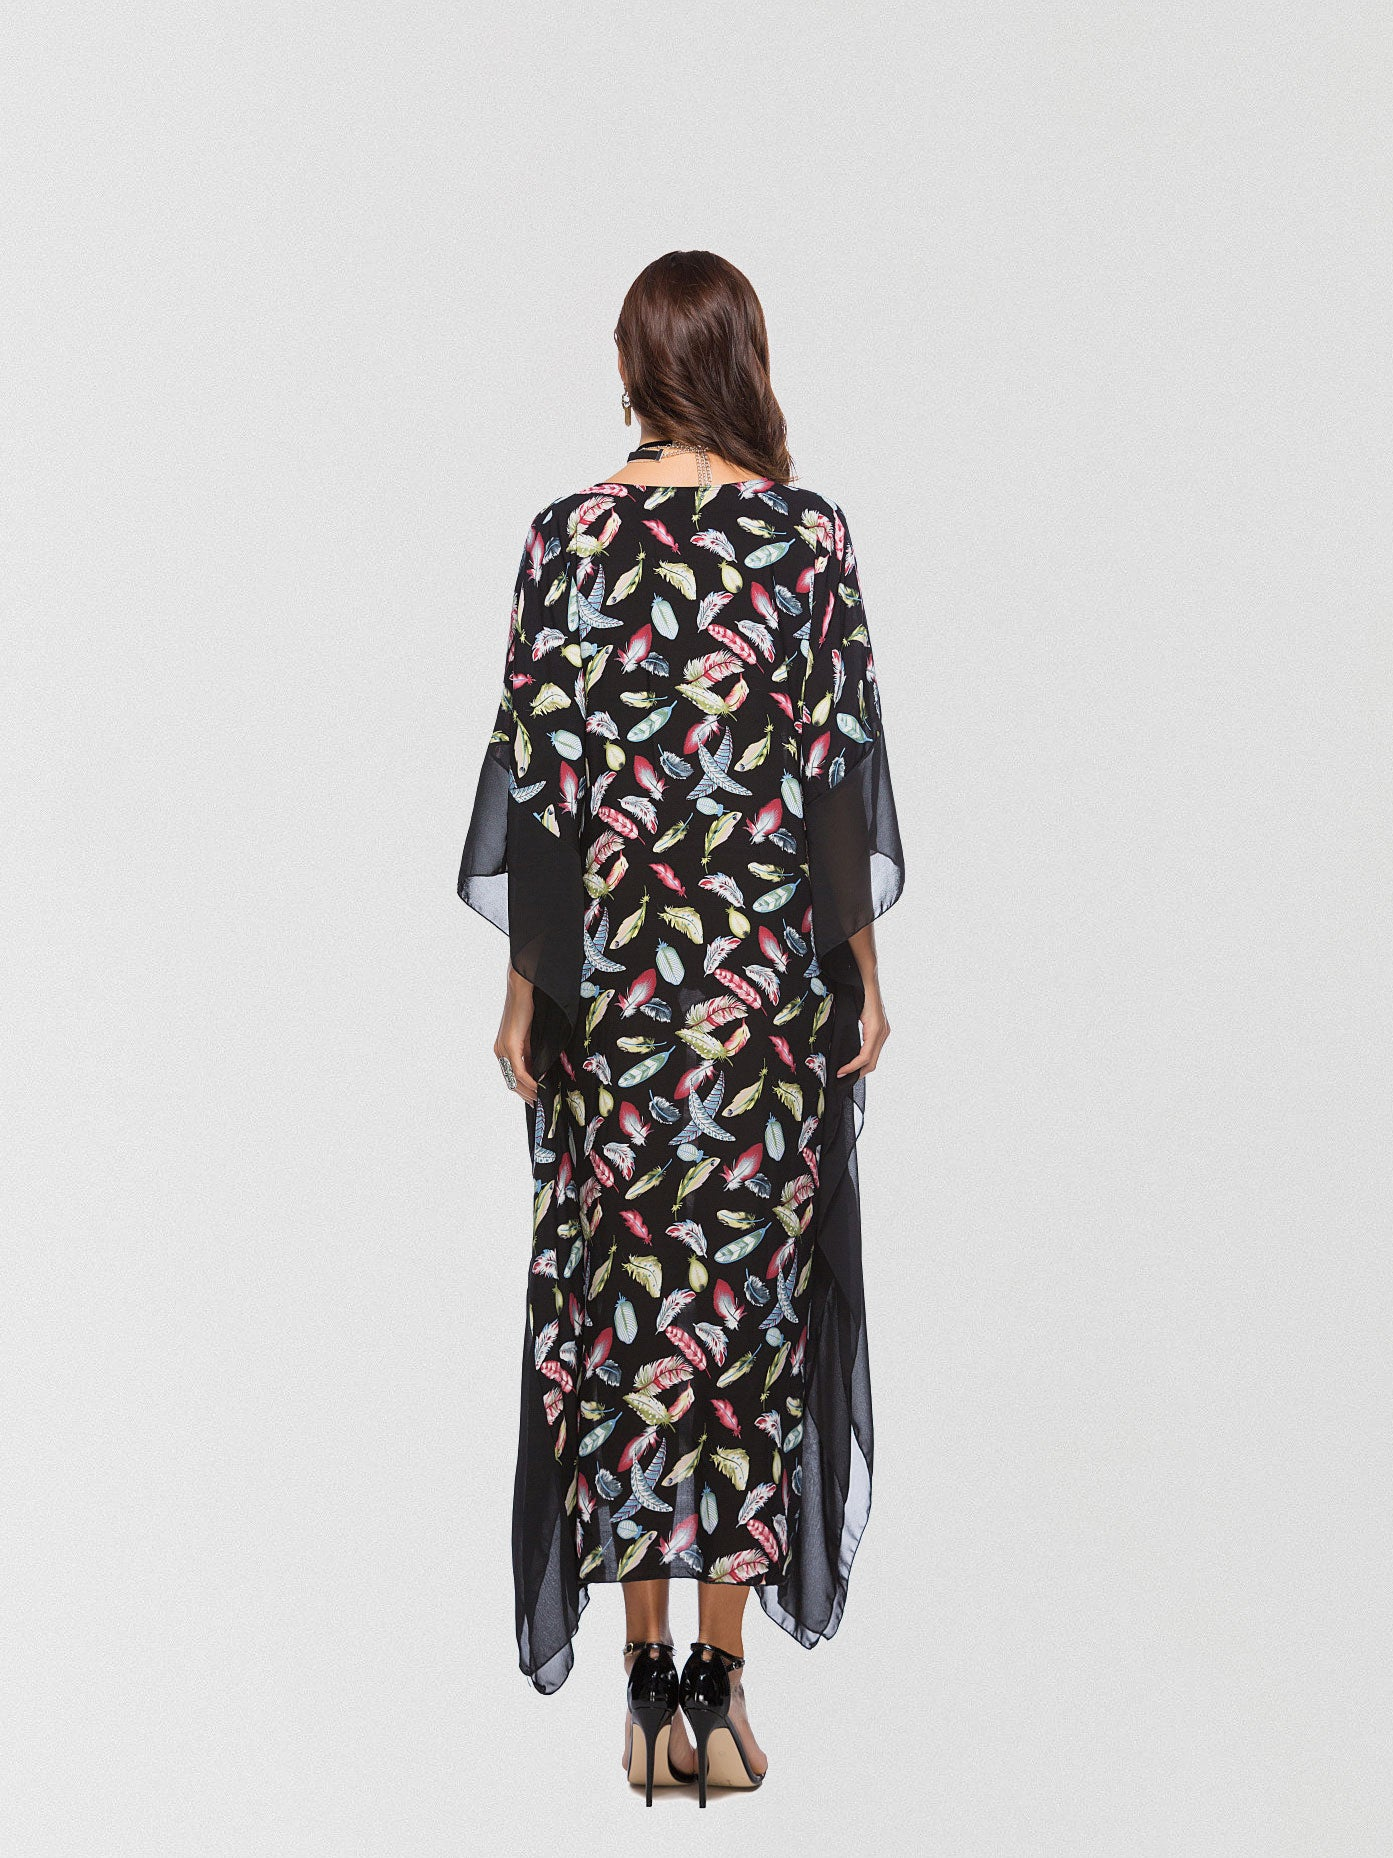 Talk To Me Printed Maxi Dress